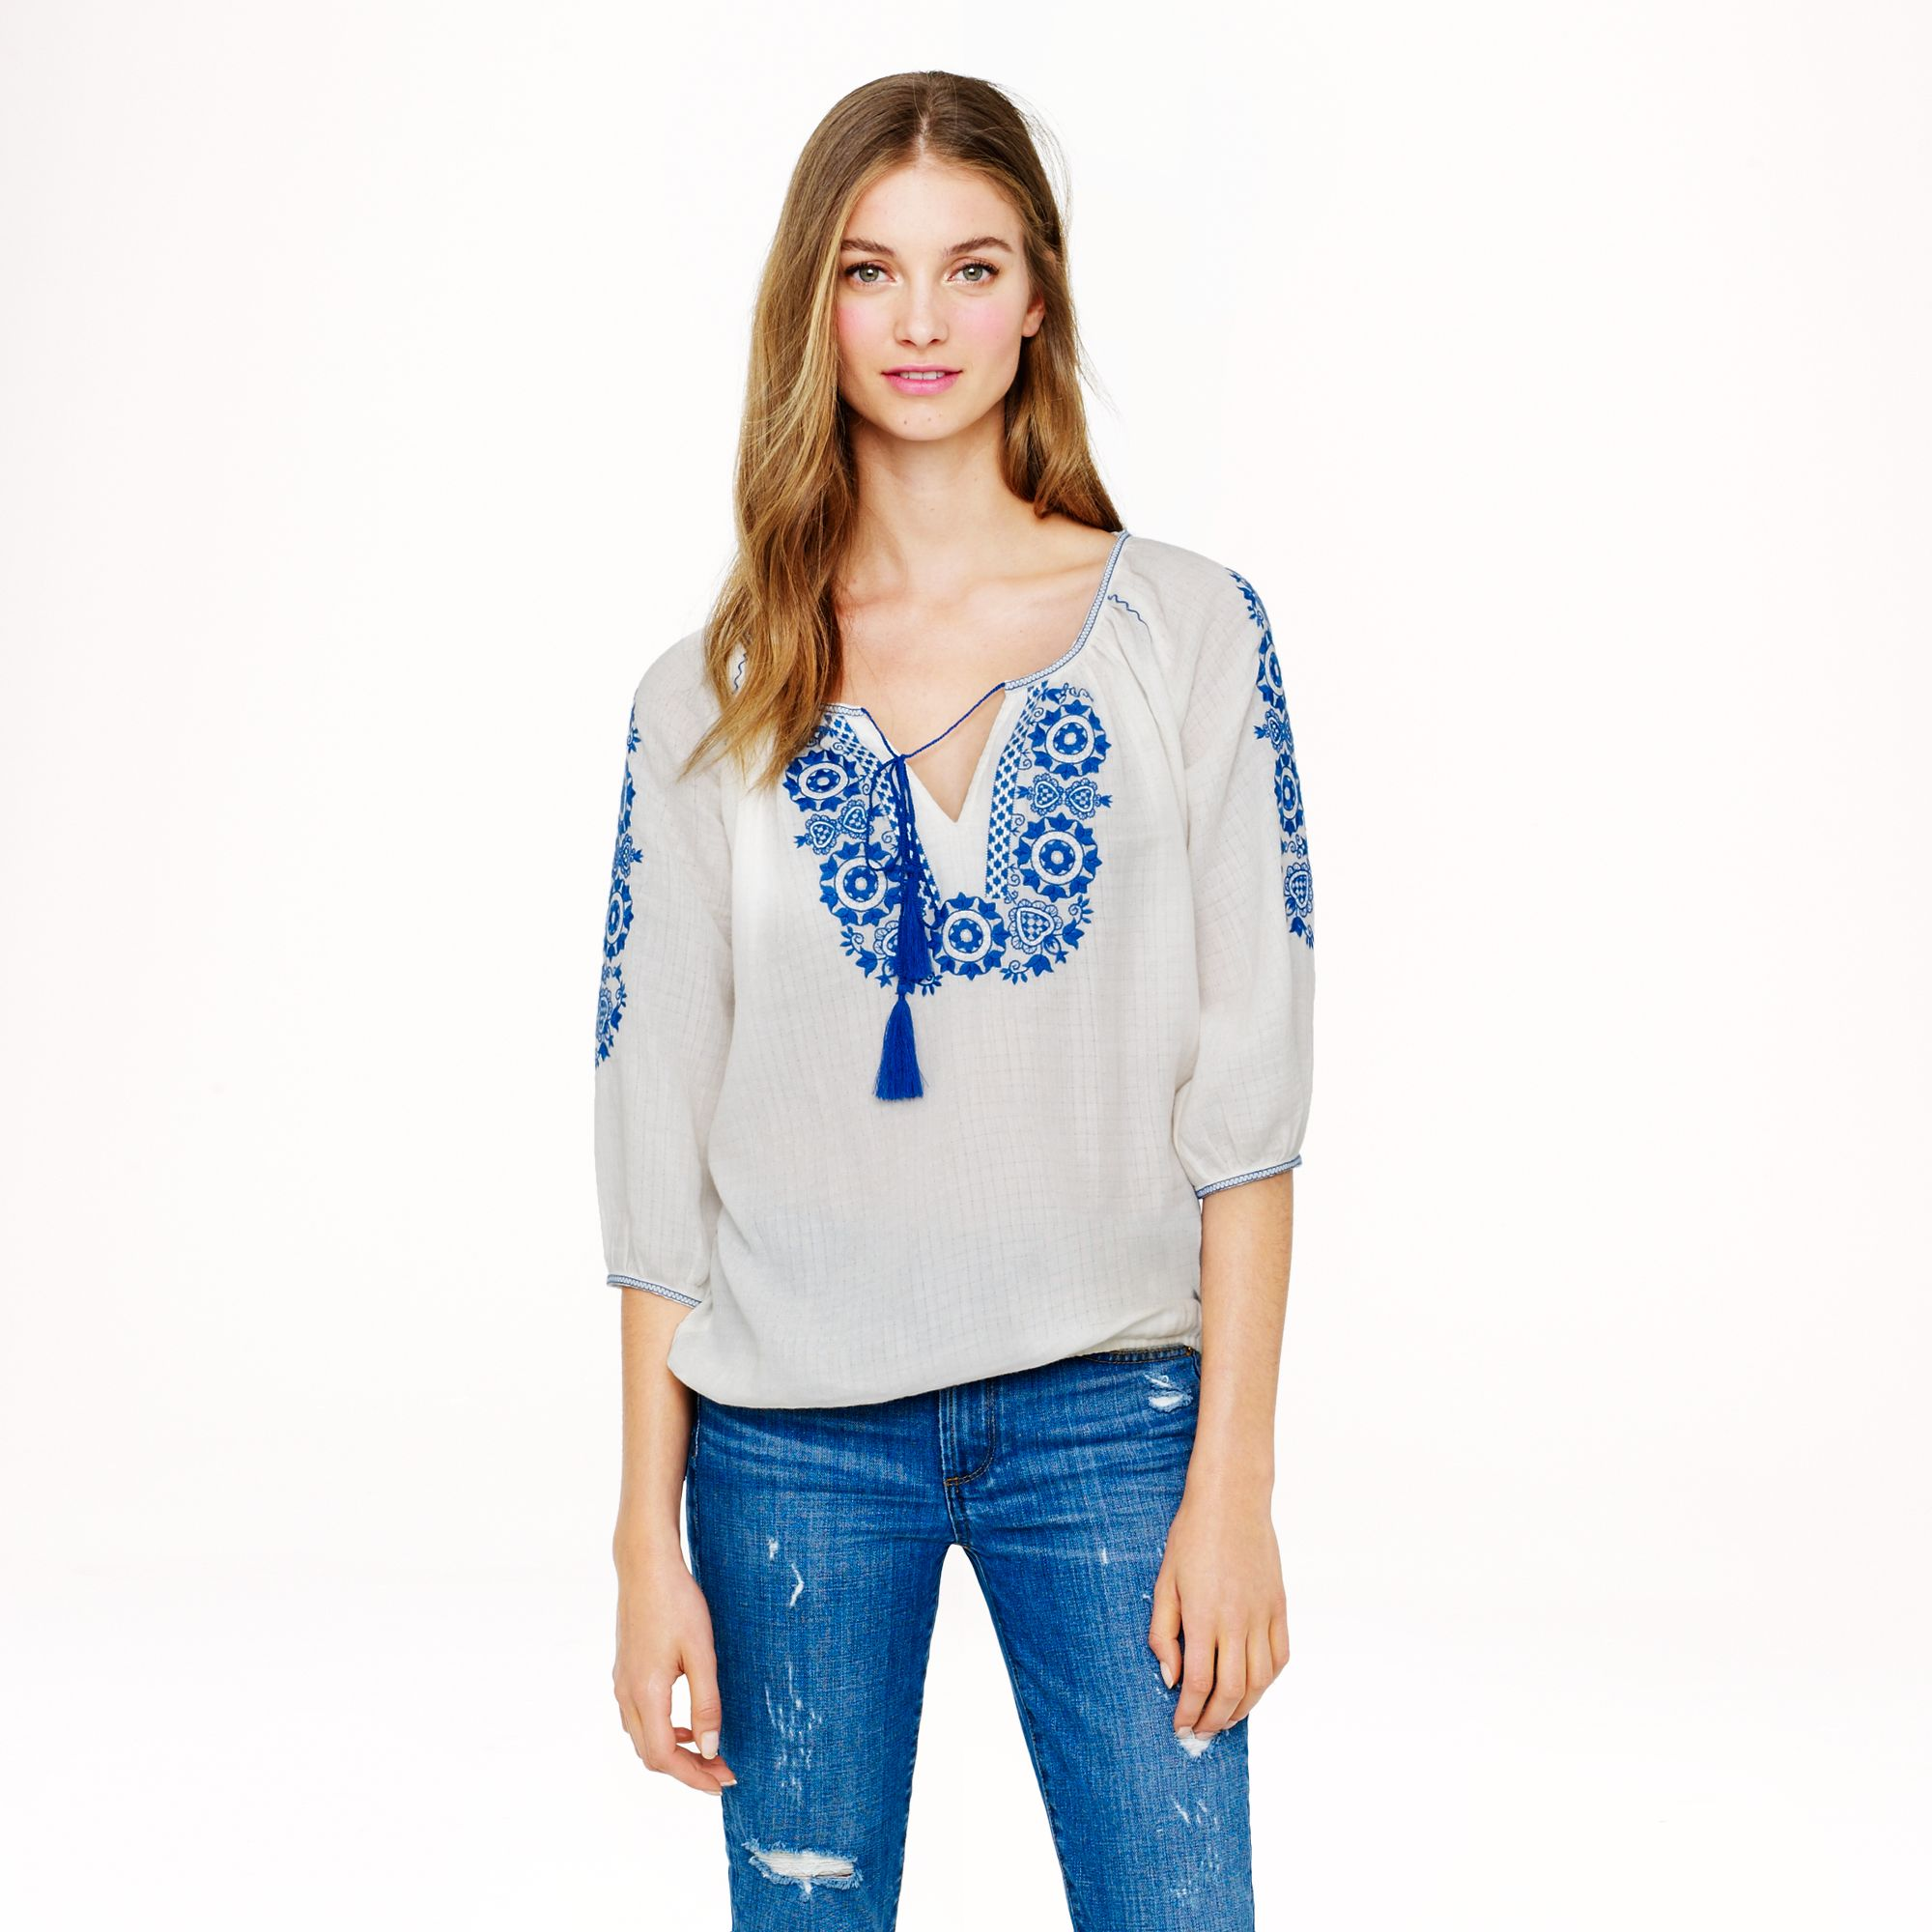 Lyst - J.Crew Embroidered Peasant Top in White b58c3d217b